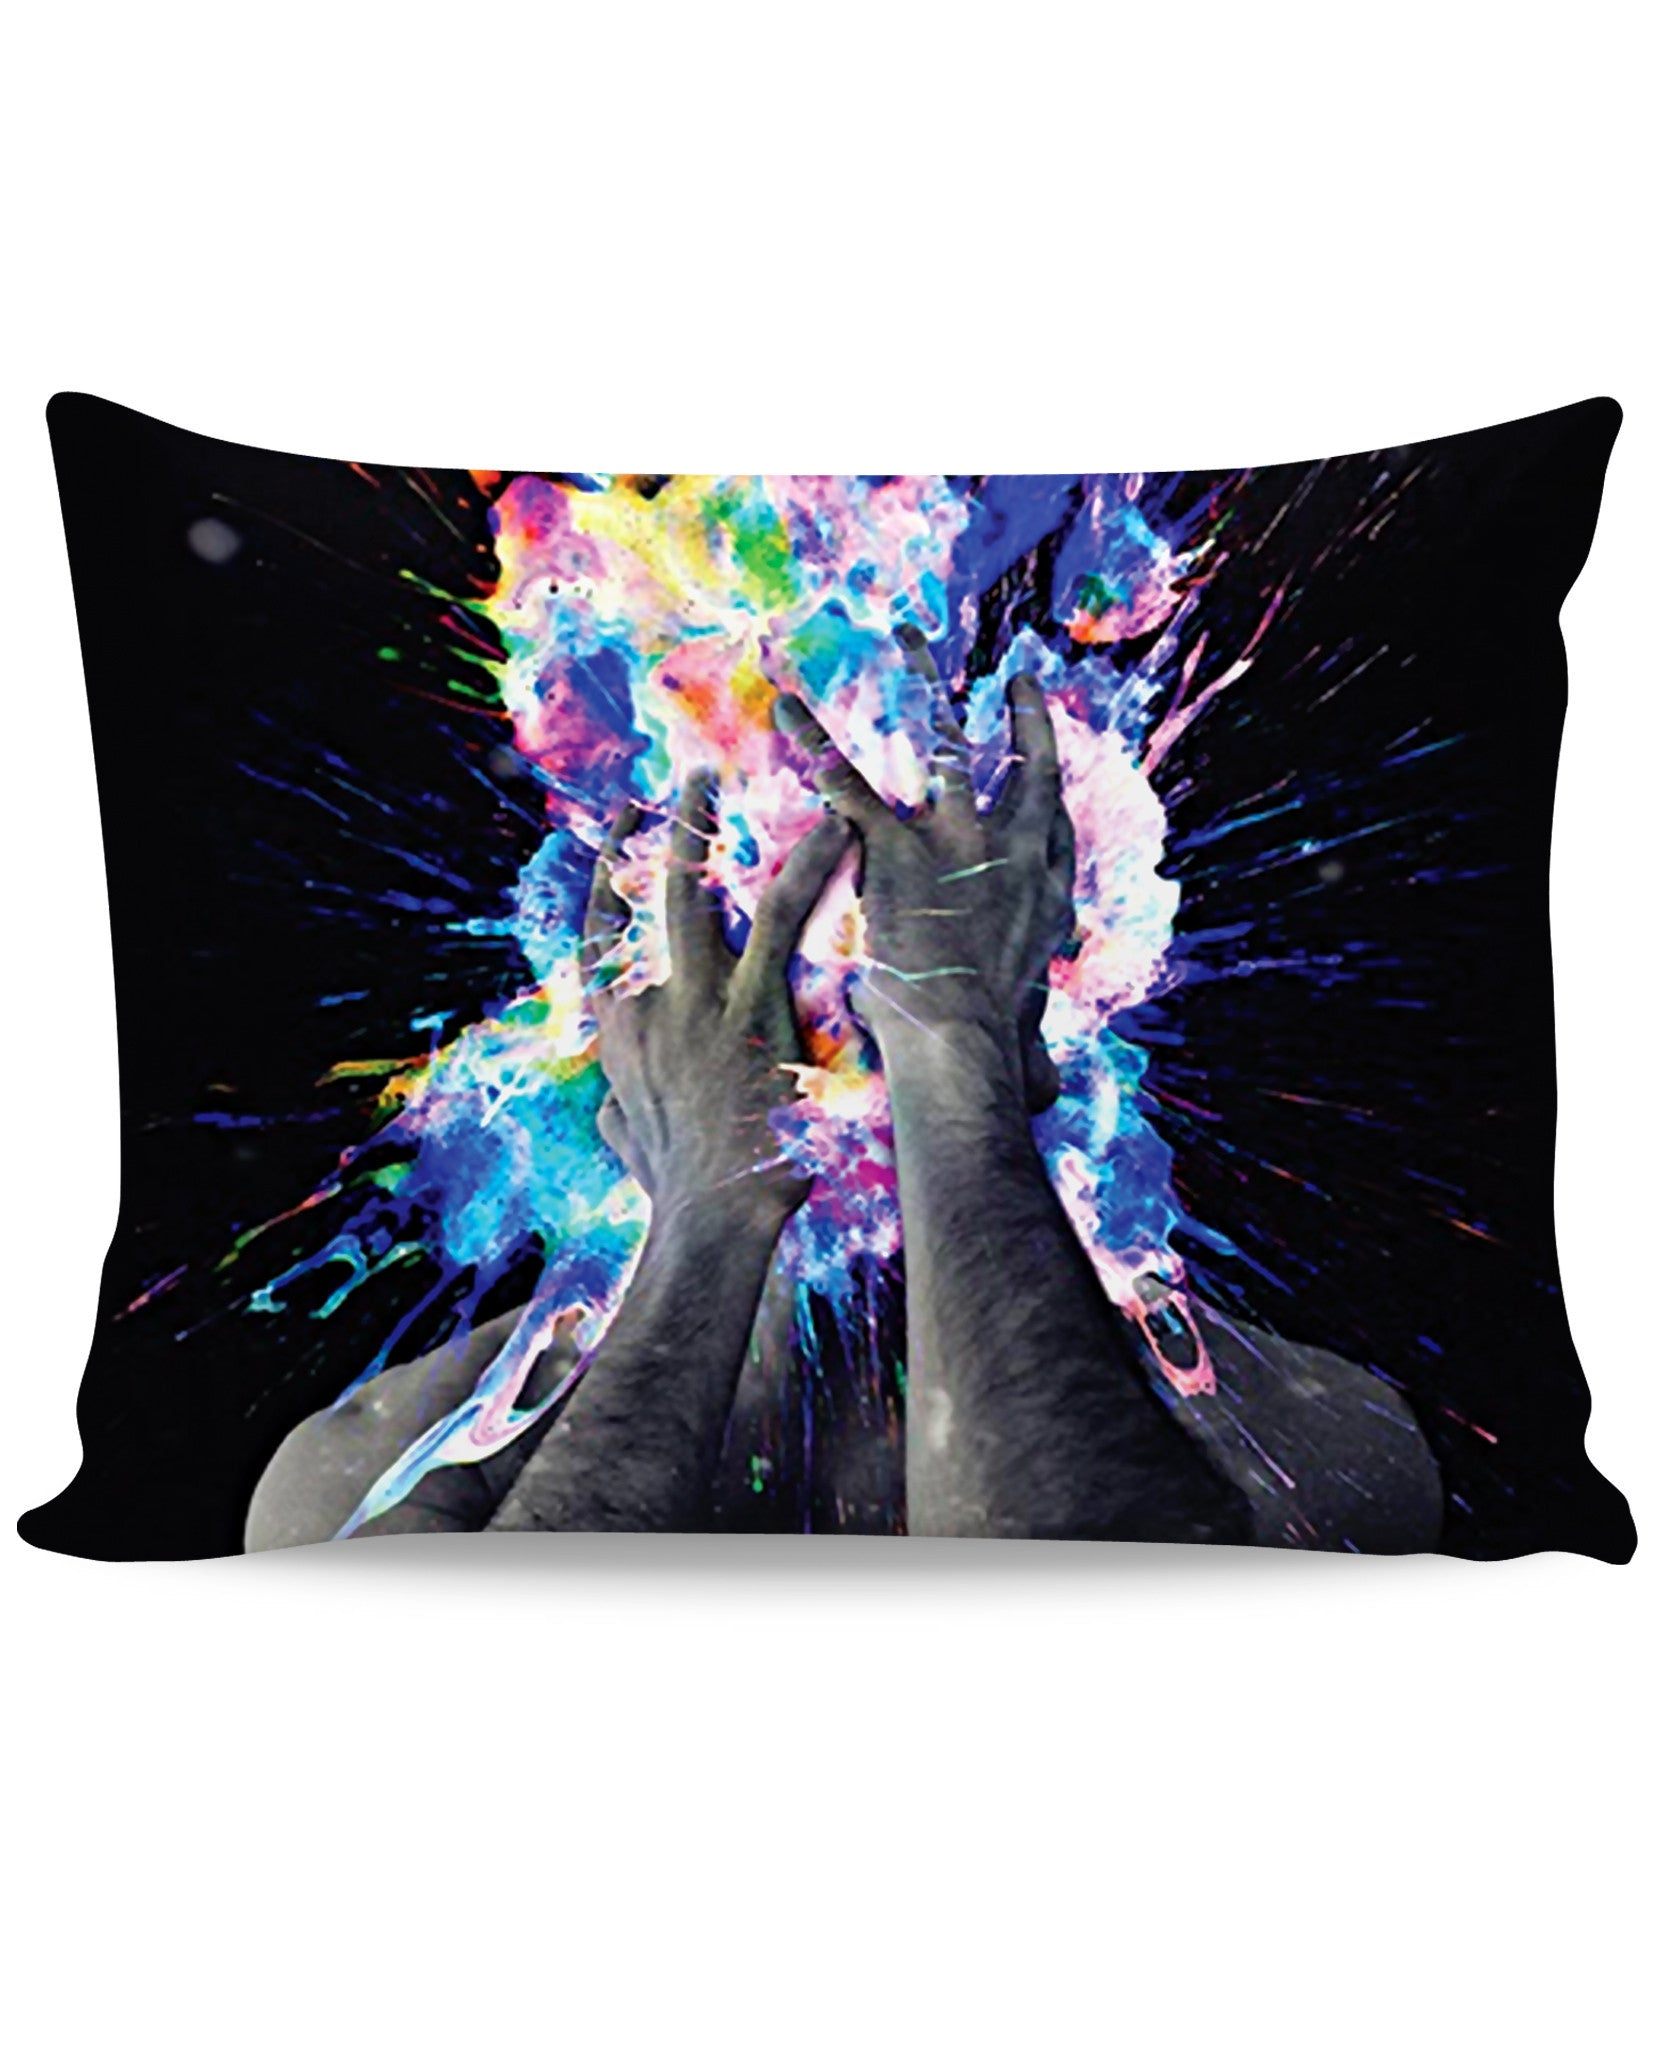 Artistic Bomb Pillow Case